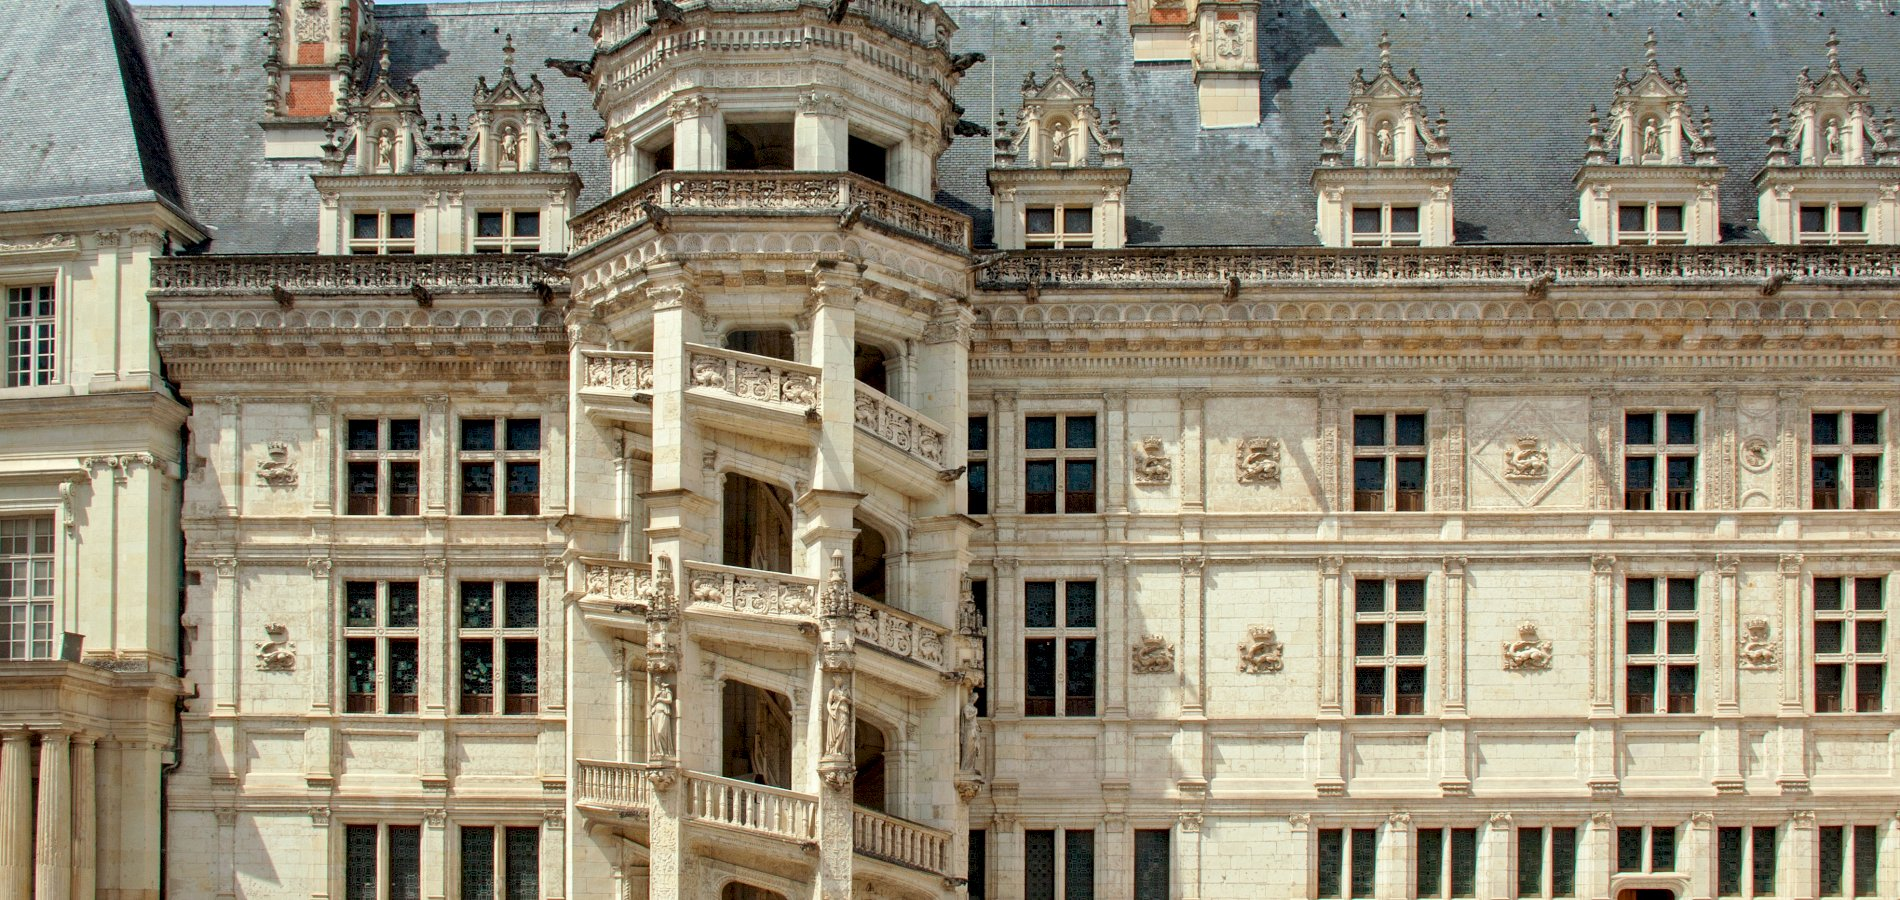 Ophorus Tours - 4 Days Renaissance Castles of the Loire Valley Private Travel Package - 4* Hotel Option